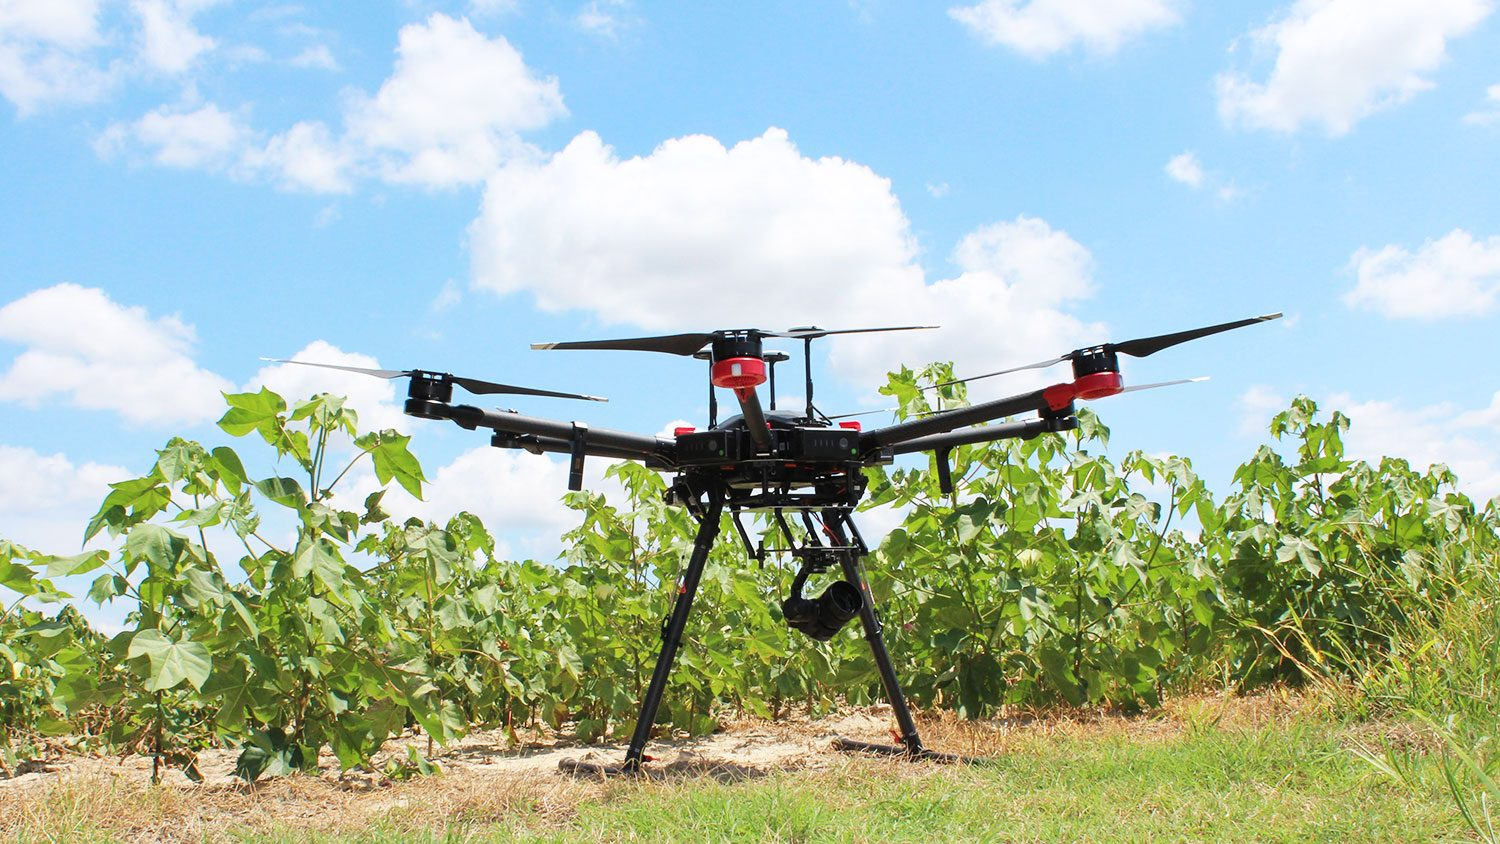 Unmanned Aerial Vehicle in a field